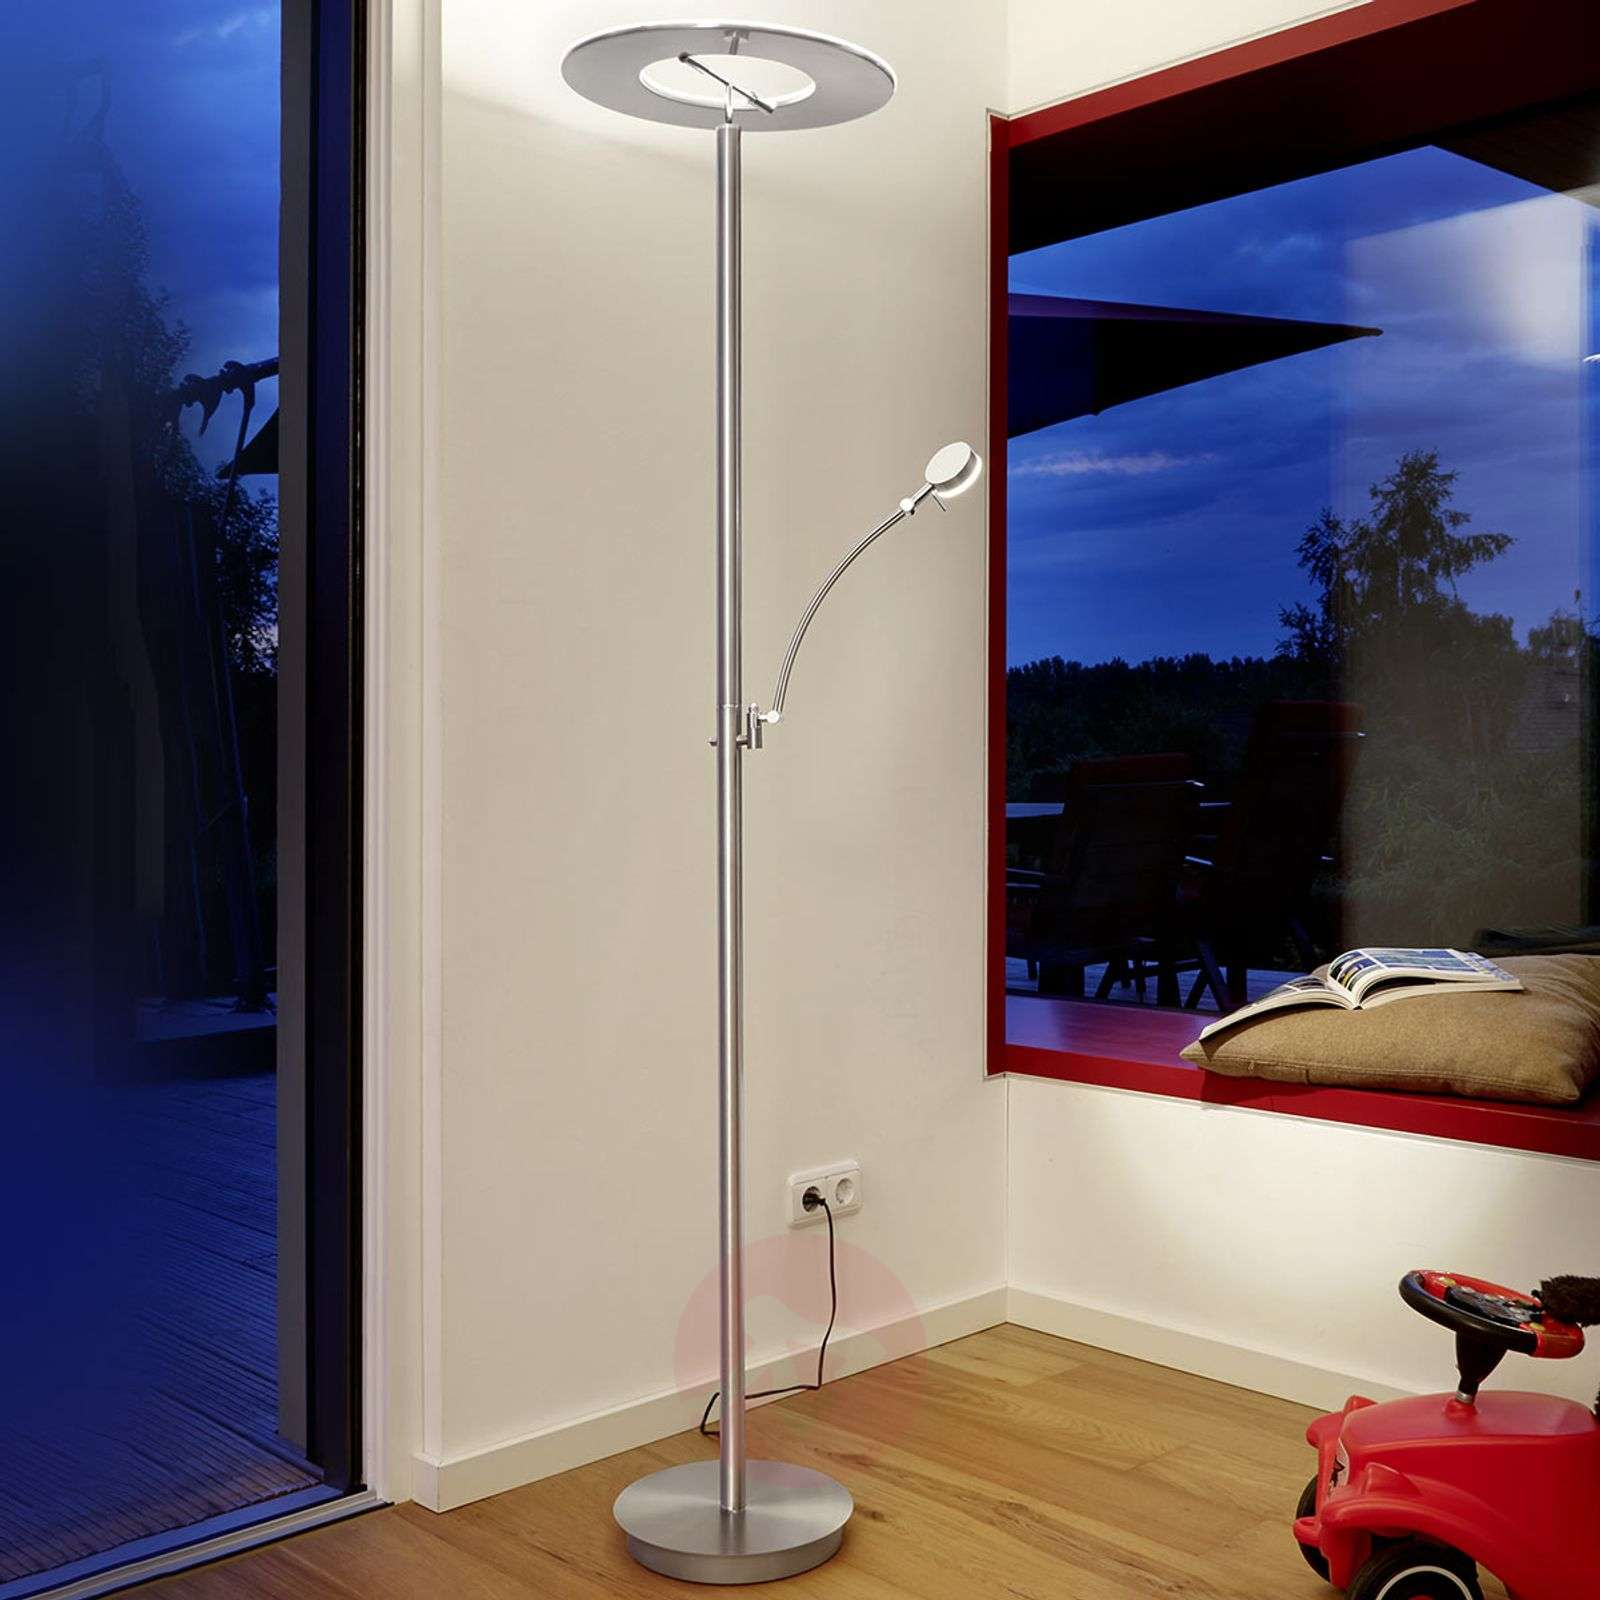 Lampadaire LED Monza, indirect, dimmable, liseuse-1554004-01